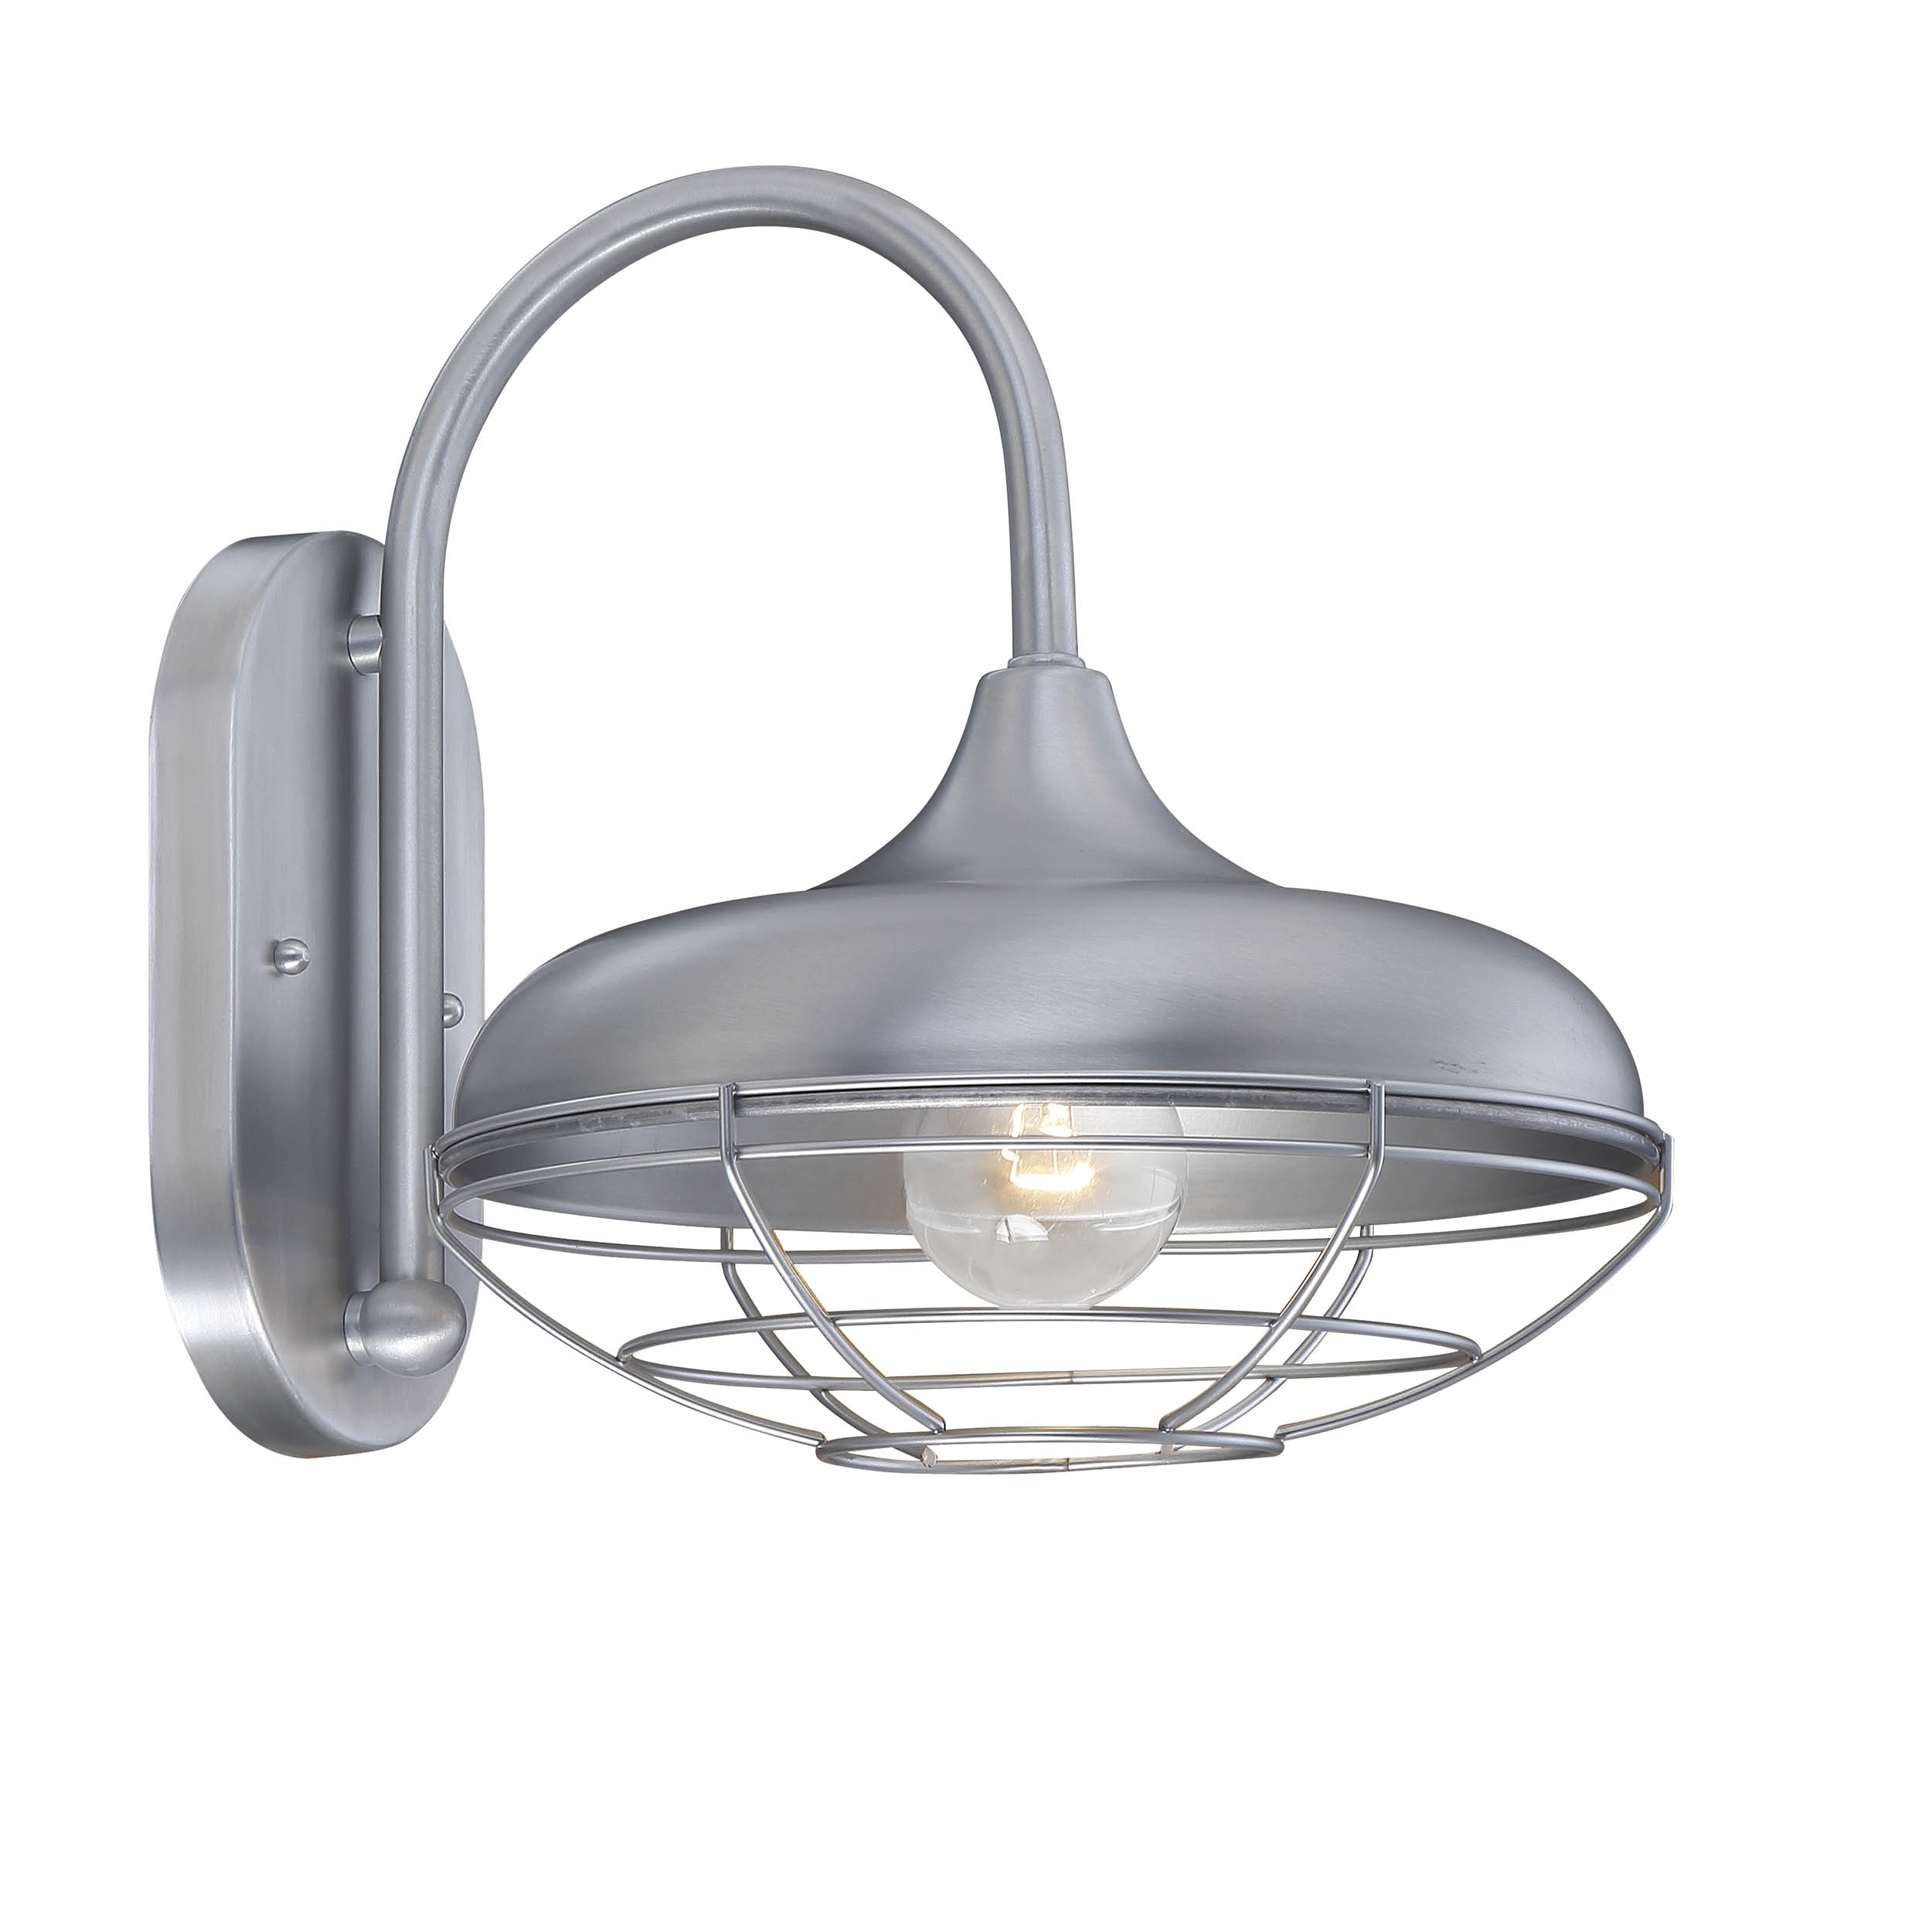 Brushed Aluminum Barn Light Style Wall Sconce